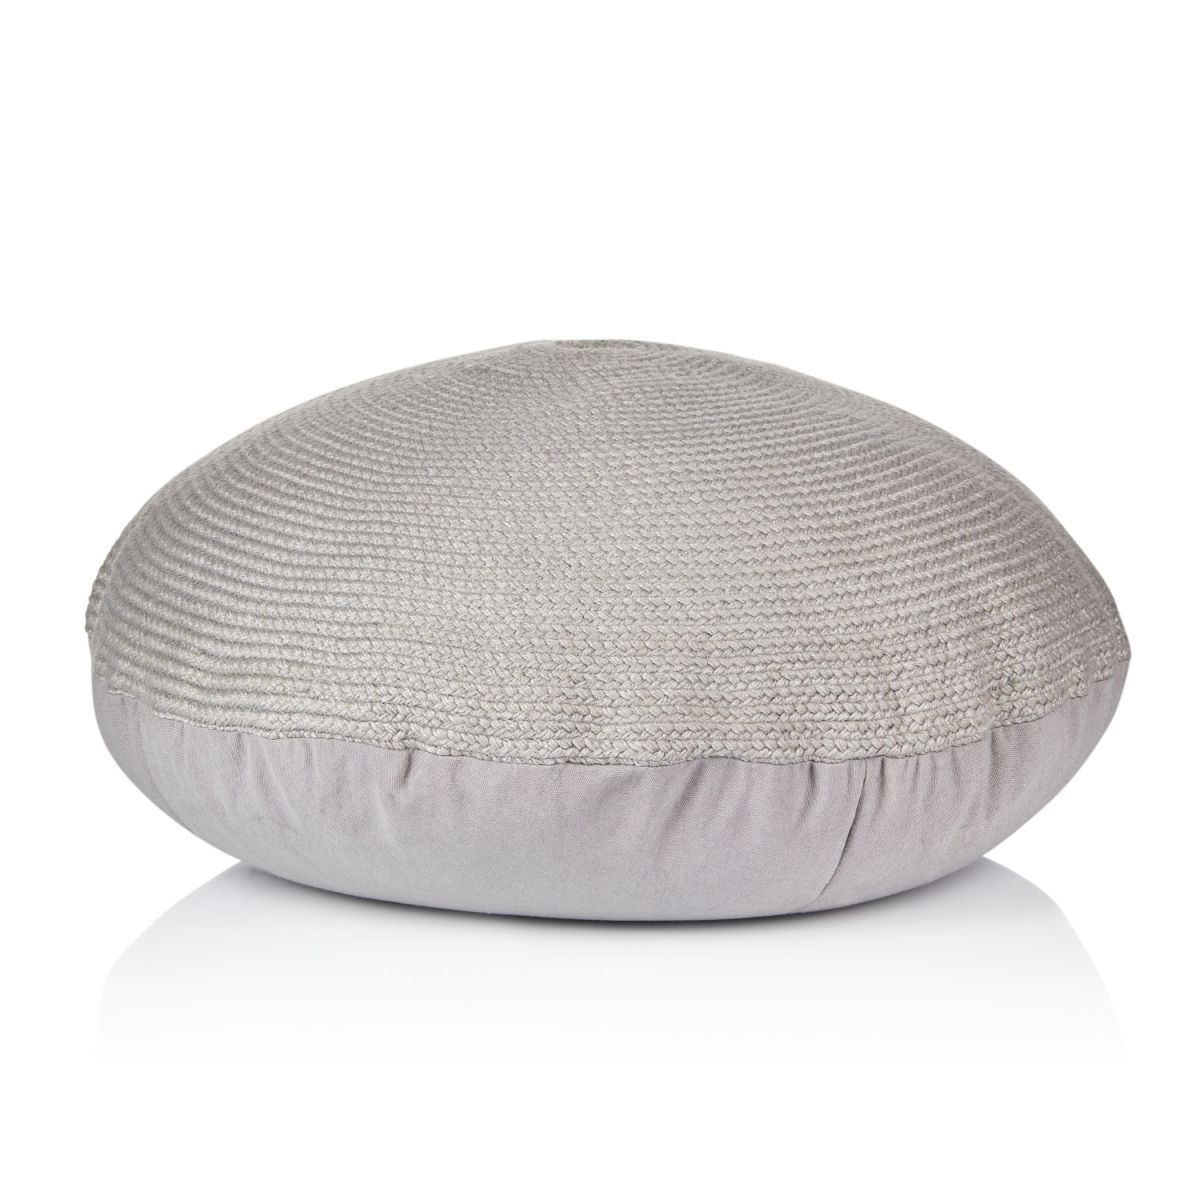 Outdoorpouf, Polyester